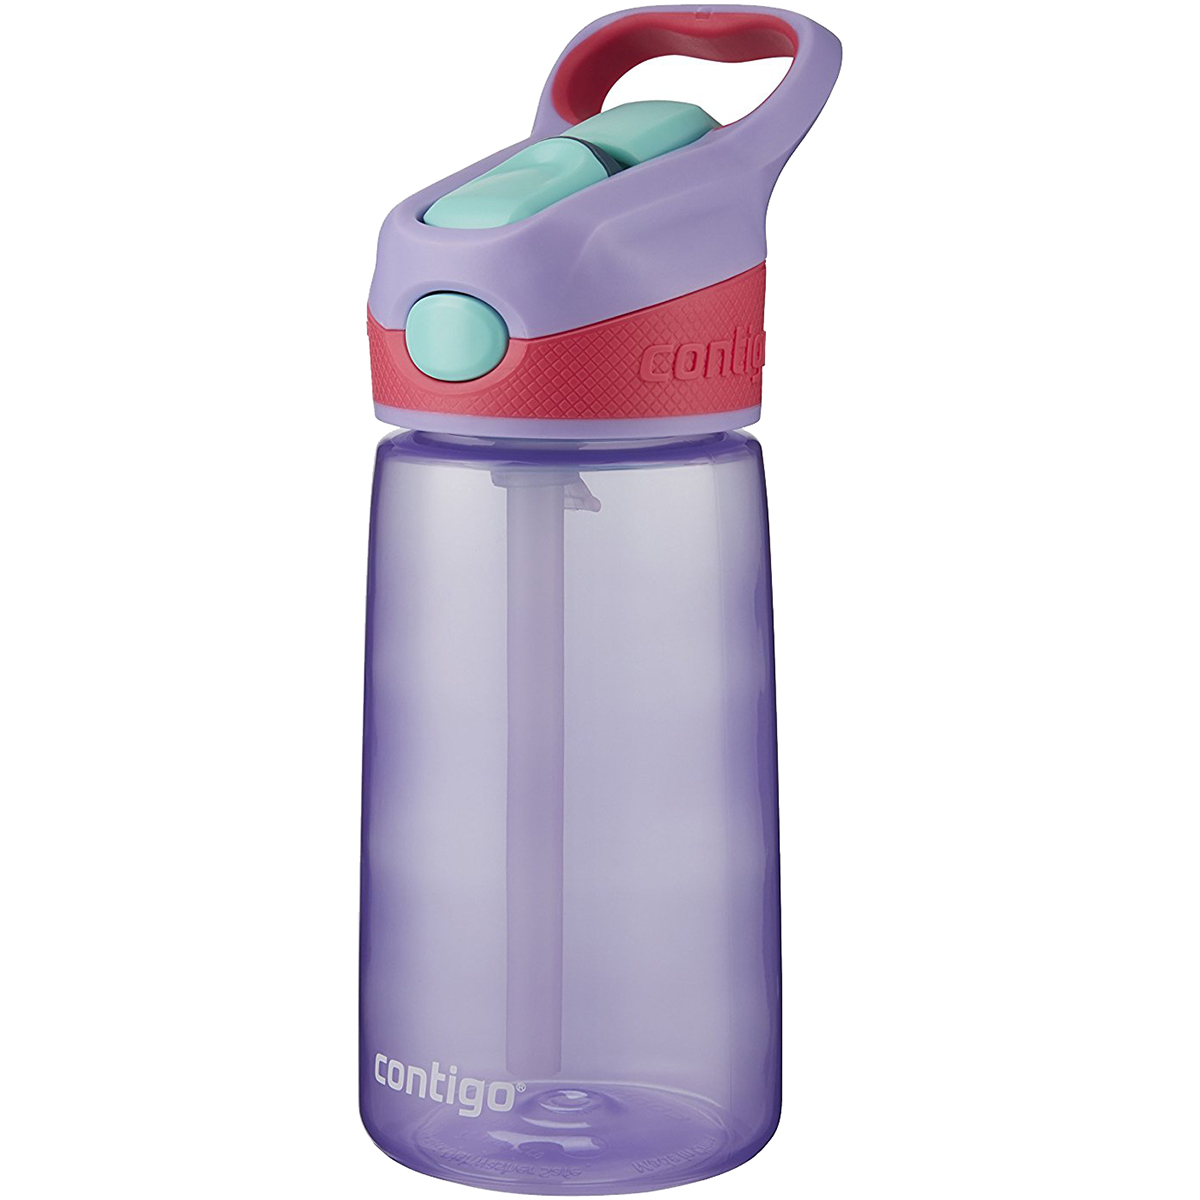 Contigo-14-oz-Kid-039-s-Striker-Autospout-Water-Bottle Indexbild 57